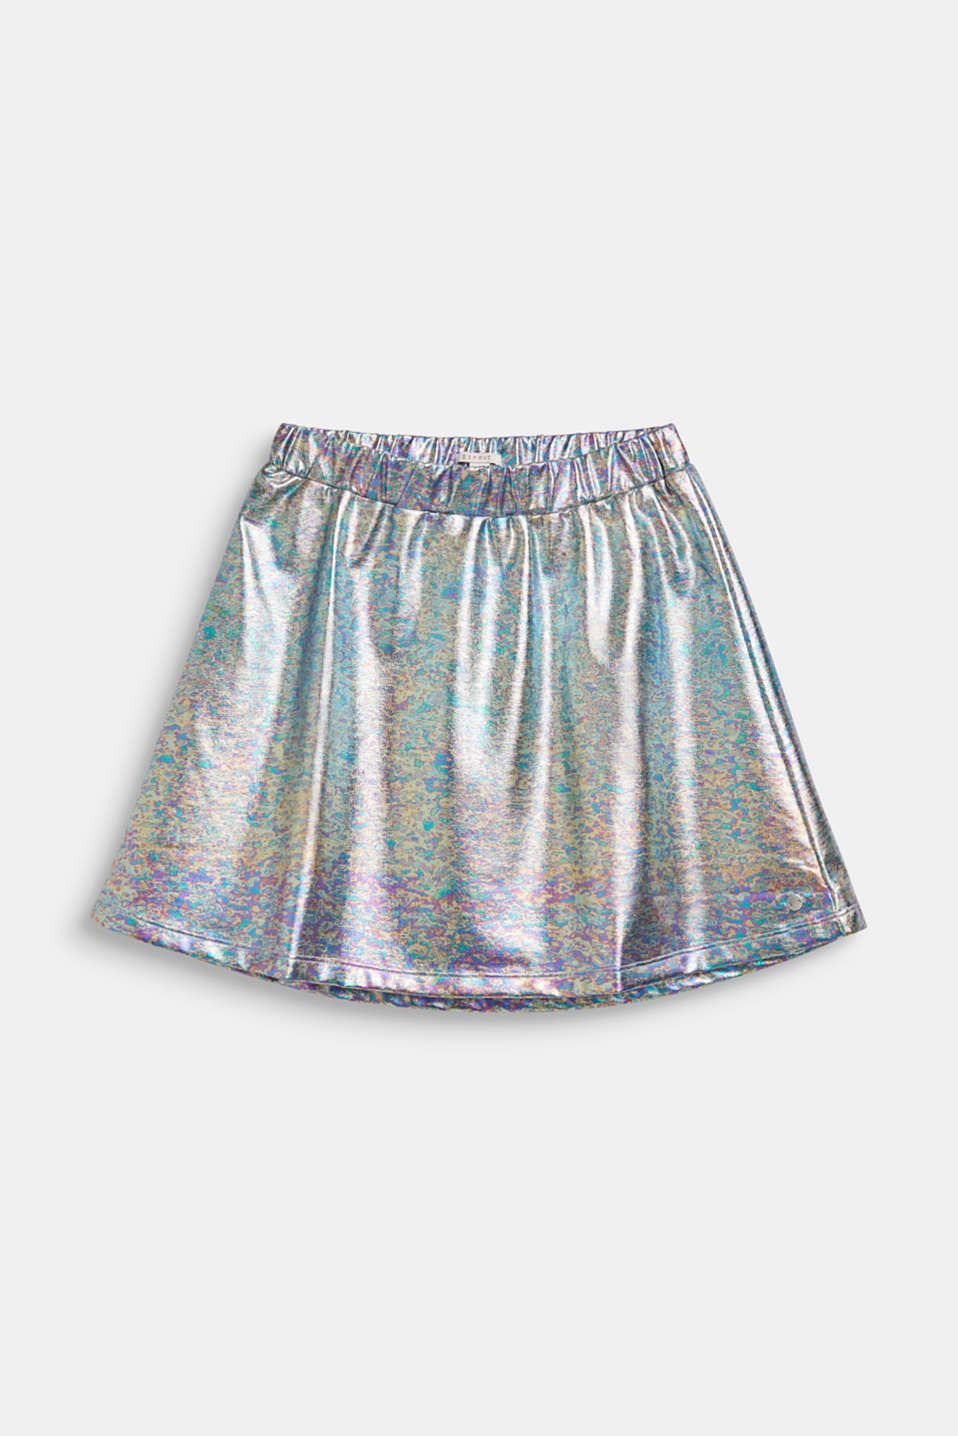 Esprit - Skirt in an iridescent metallic finish